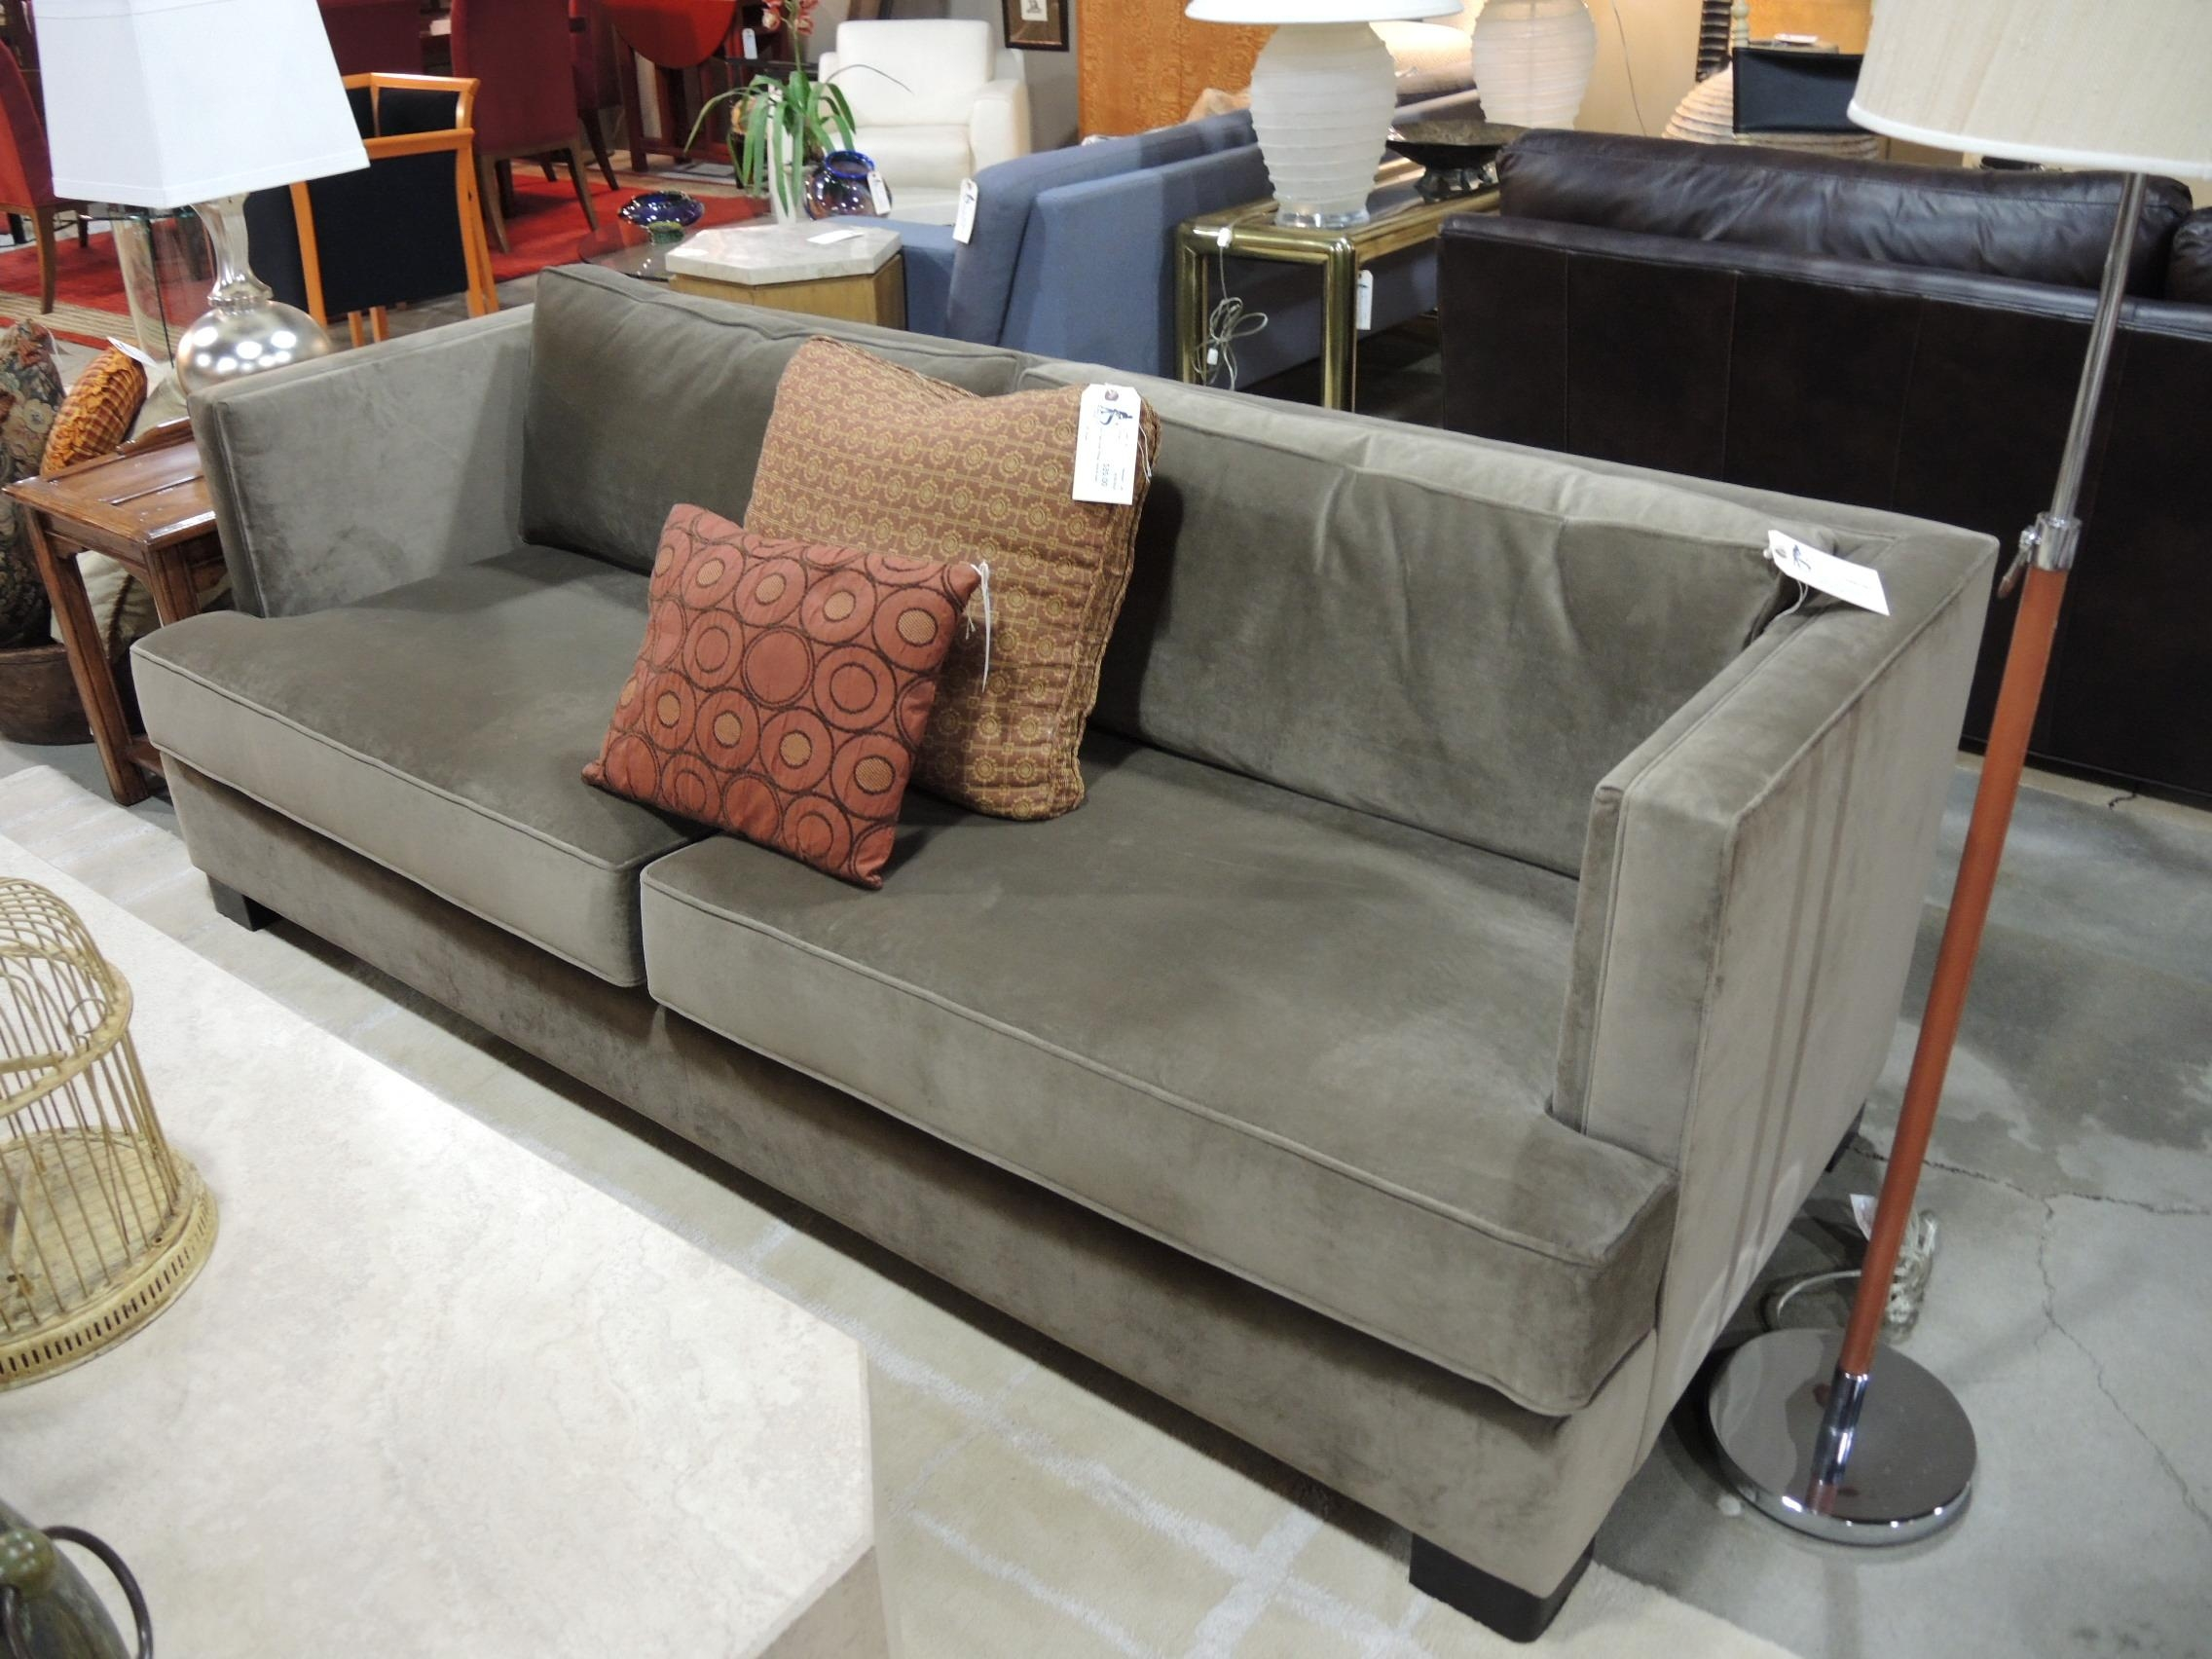 Latest Arrivals: Saturday, September 27Th– | Seams To Fit Home Regarding Deep Cushioned Sofas (View 12 of 22)